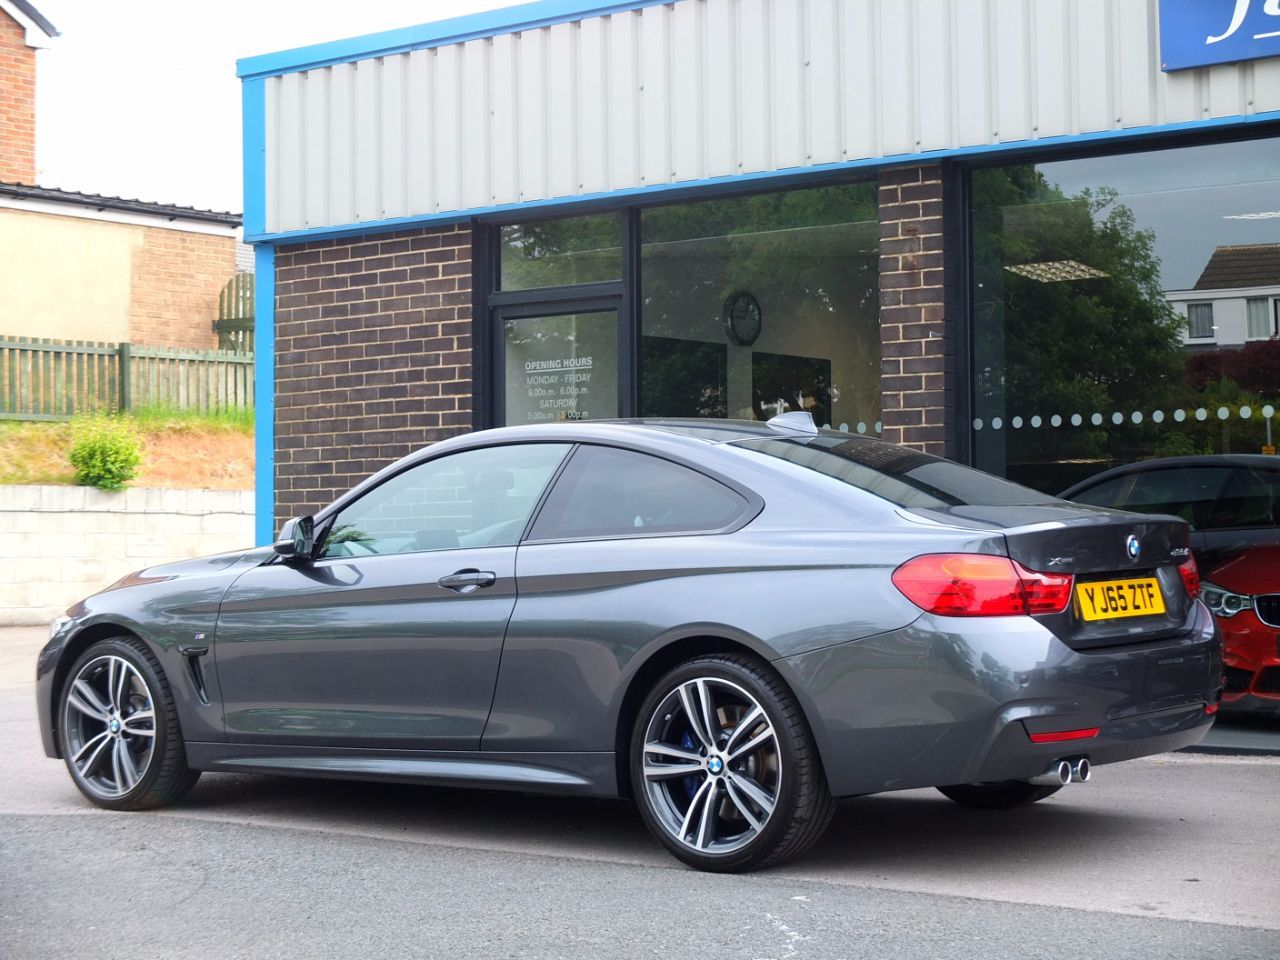 second hand bmw 4 series 435d xdrive m sport plus coupe auto for sale in bradford west. Black Bedroom Furniture Sets. Home Design Ideas